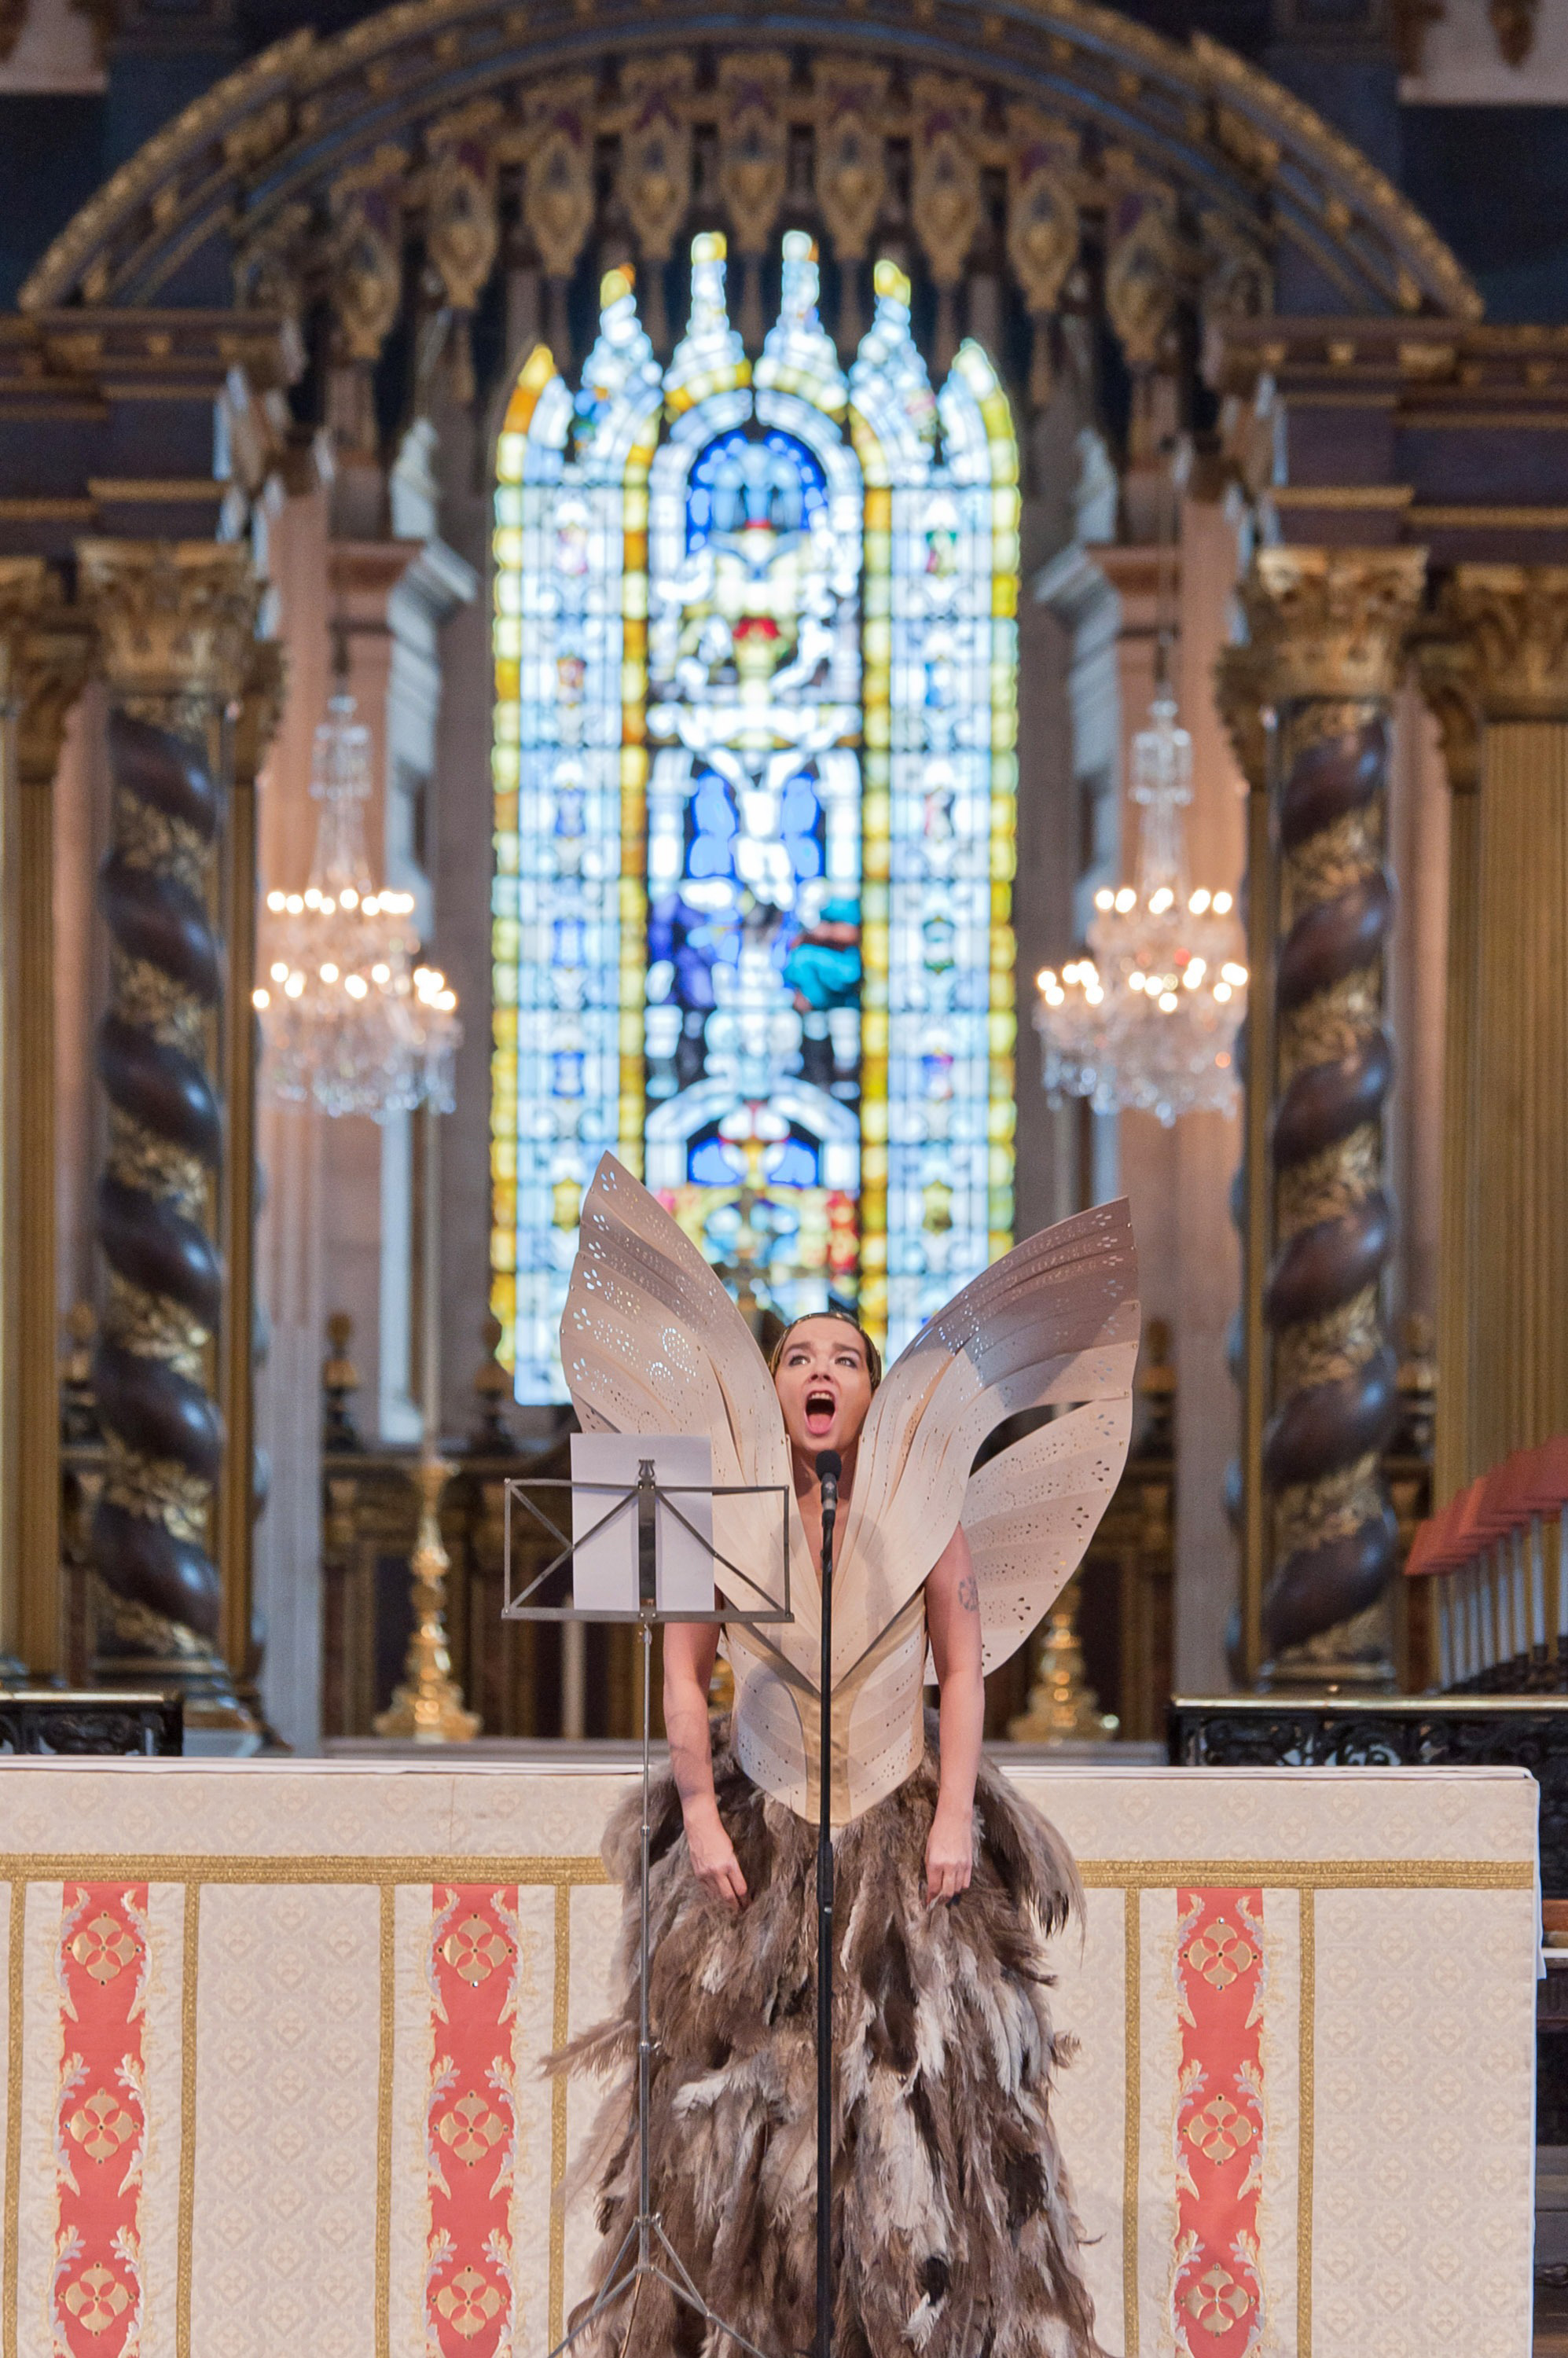 Björk performs at the Alexander McQueen Memorial Service at St. Paul's Cathedral in London on Sept. 20, 2010.